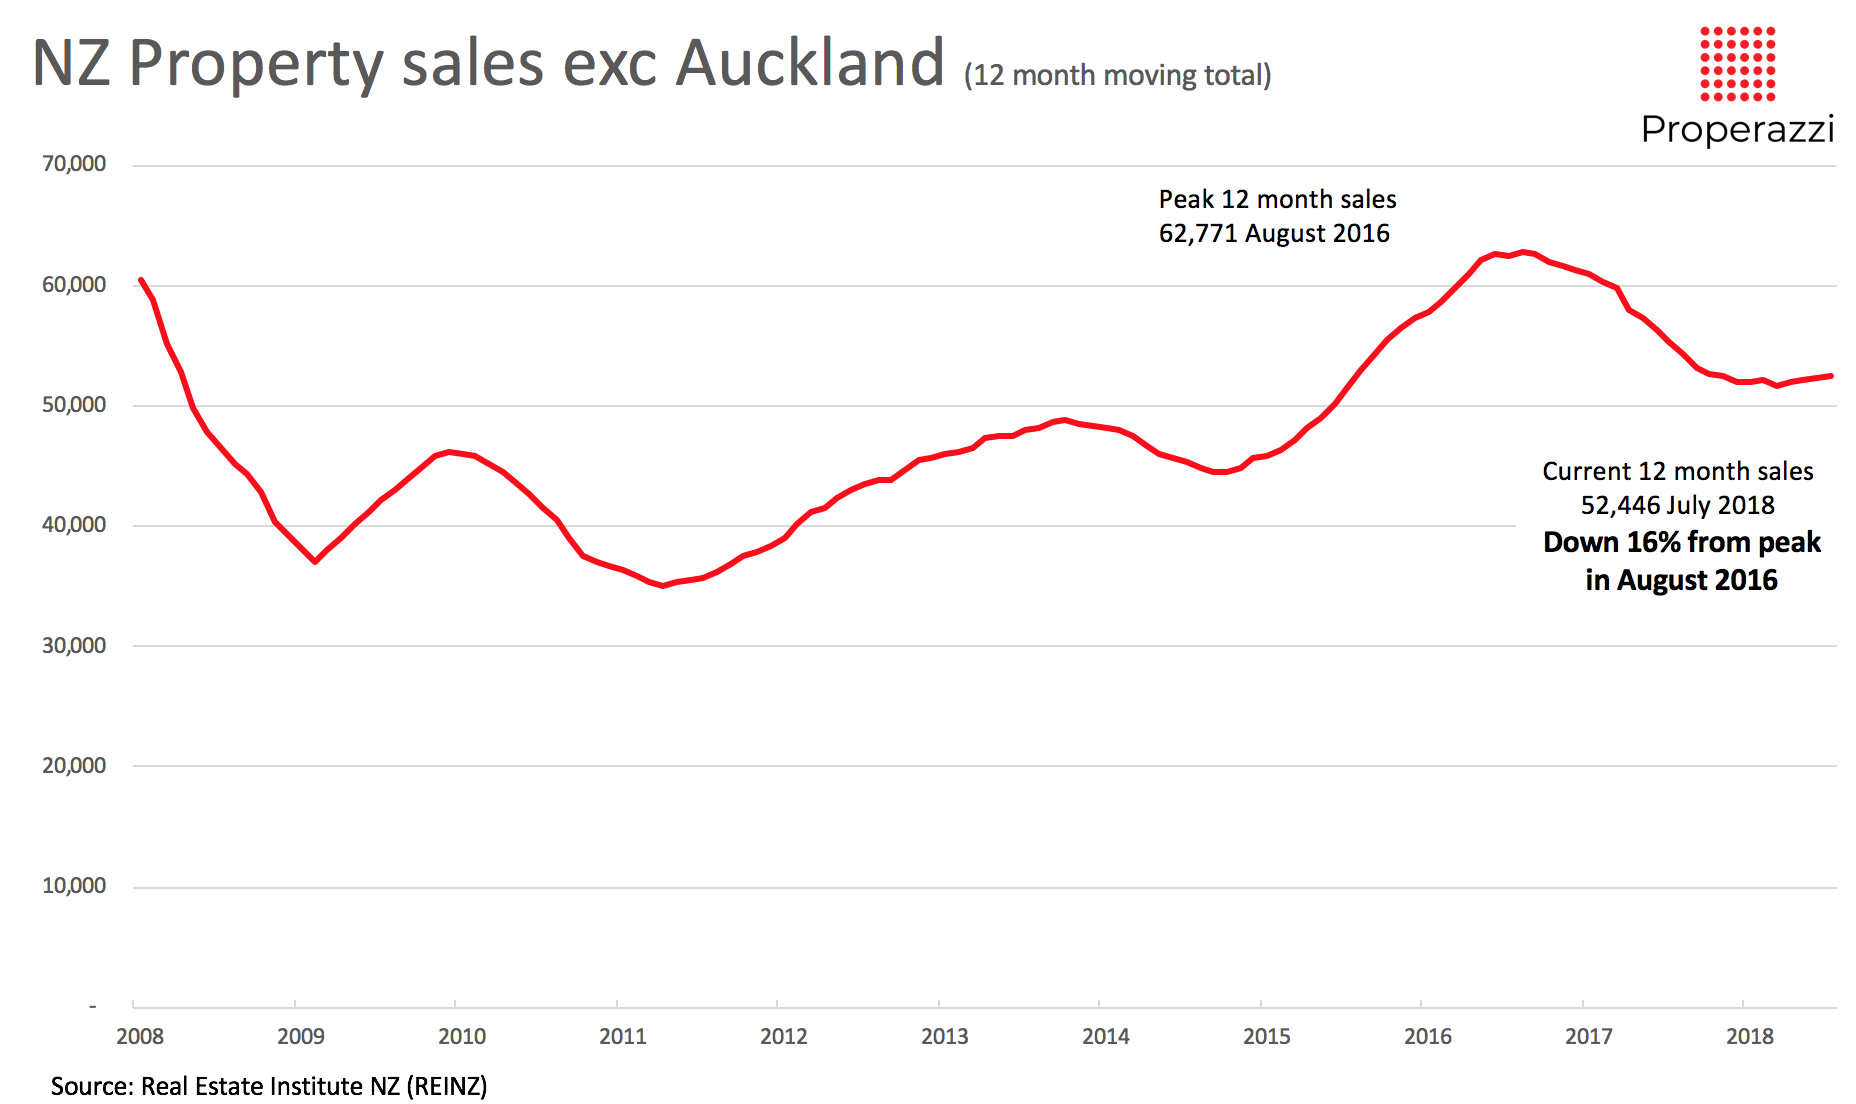 NZ property sales excluding Auckland 10 yrs to Jul 2018